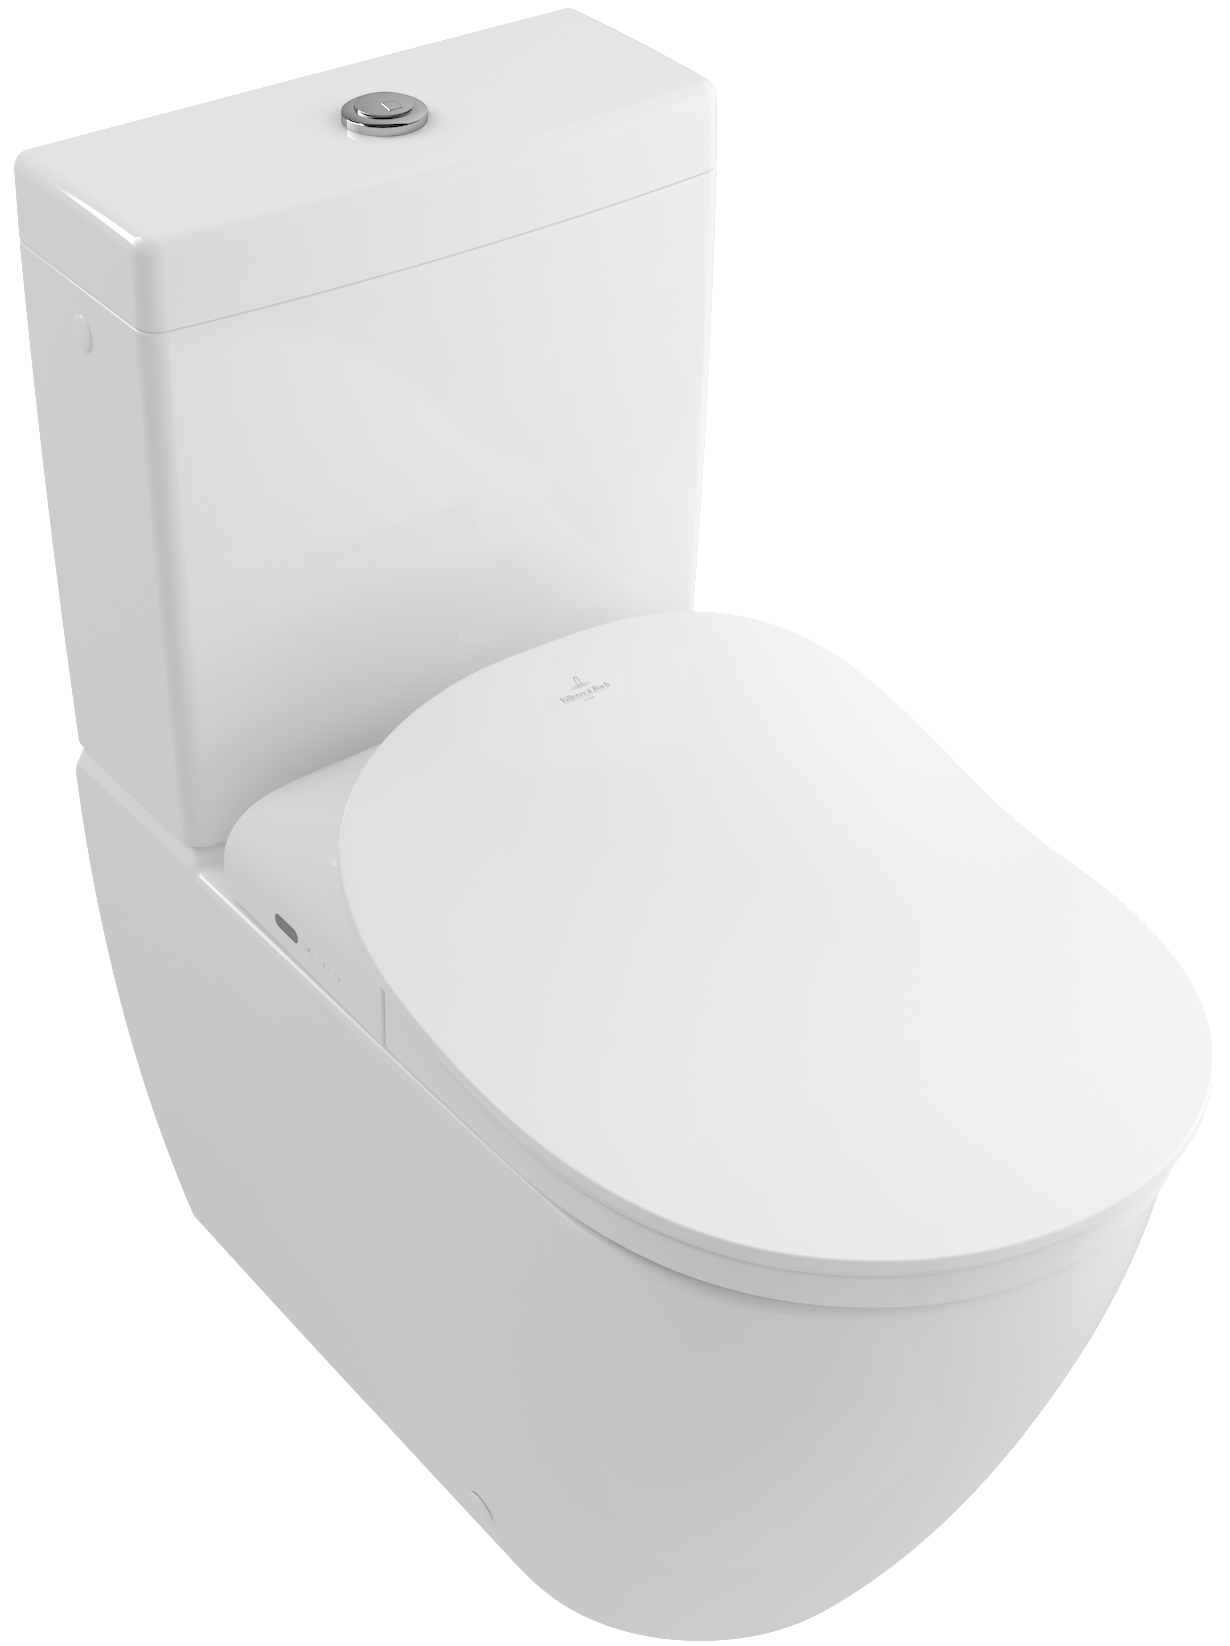 villeroy boch subway 2 0 wc villeroy boch subway 2 0 wand wc sp lrandlos directflush villeroy. Black Bedroom Furniture Sets. Home Design Ideas